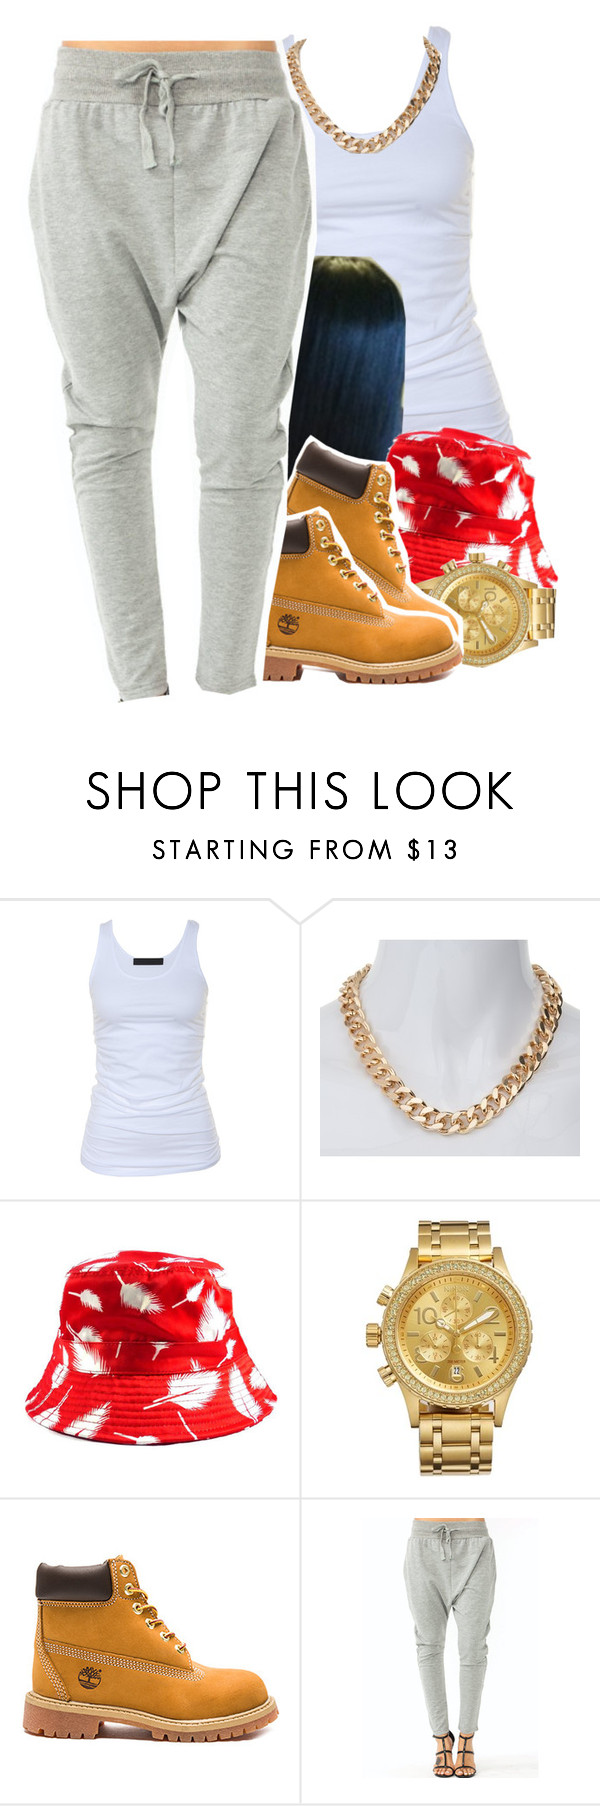 """""""I do not want to hear (school)😖😒"""" by jchristina ❤ liked on Polyvore featuring interior, interiors, interior design, home, home decor, interior decorating, Tusnelda Bloch, RADisRAD, Nixon and Timberland"""